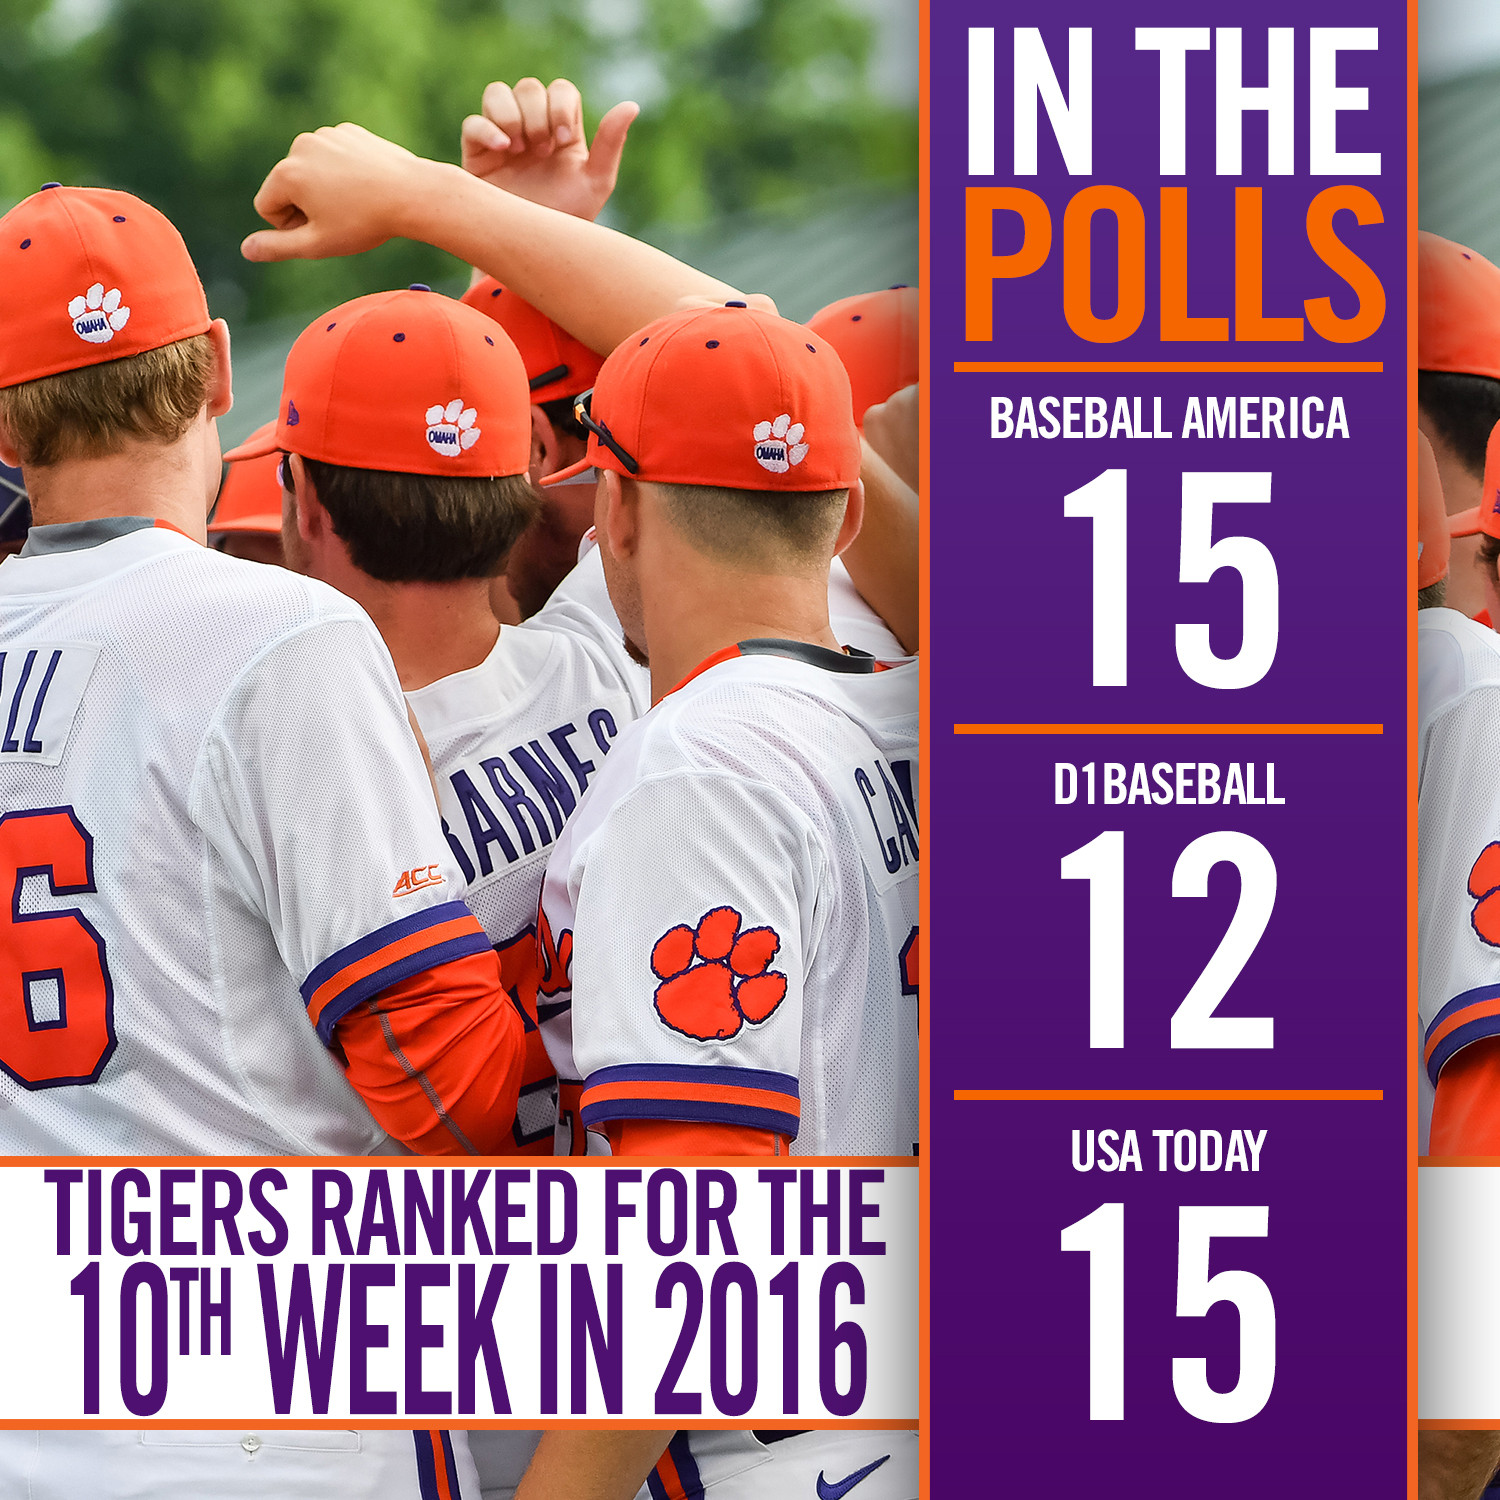 CU Enters Top 15 of the Polls